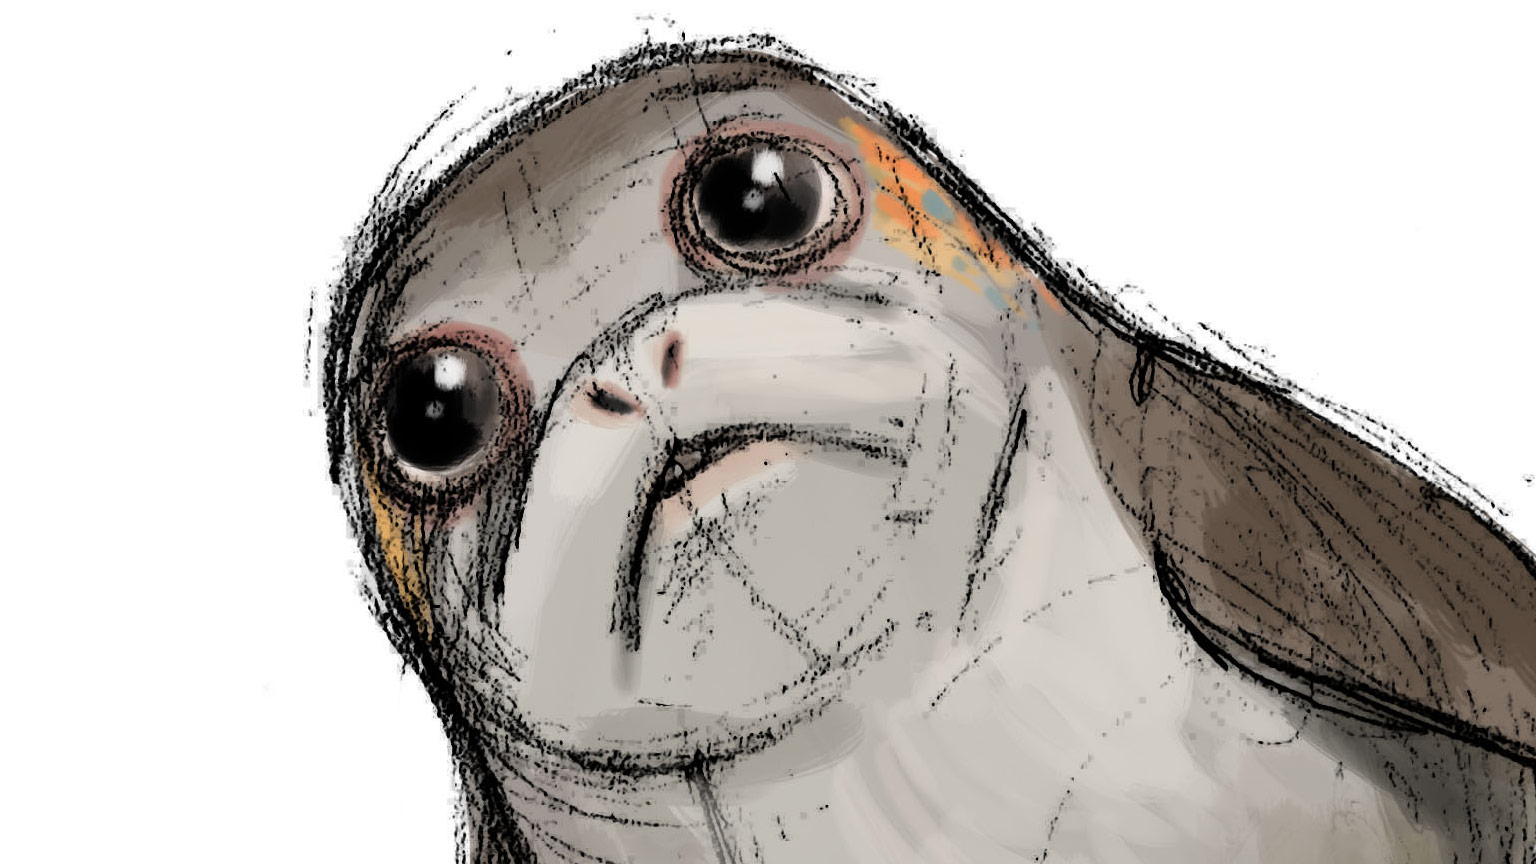 Introducing Porgs, the Cute New Creatures from Star Wars